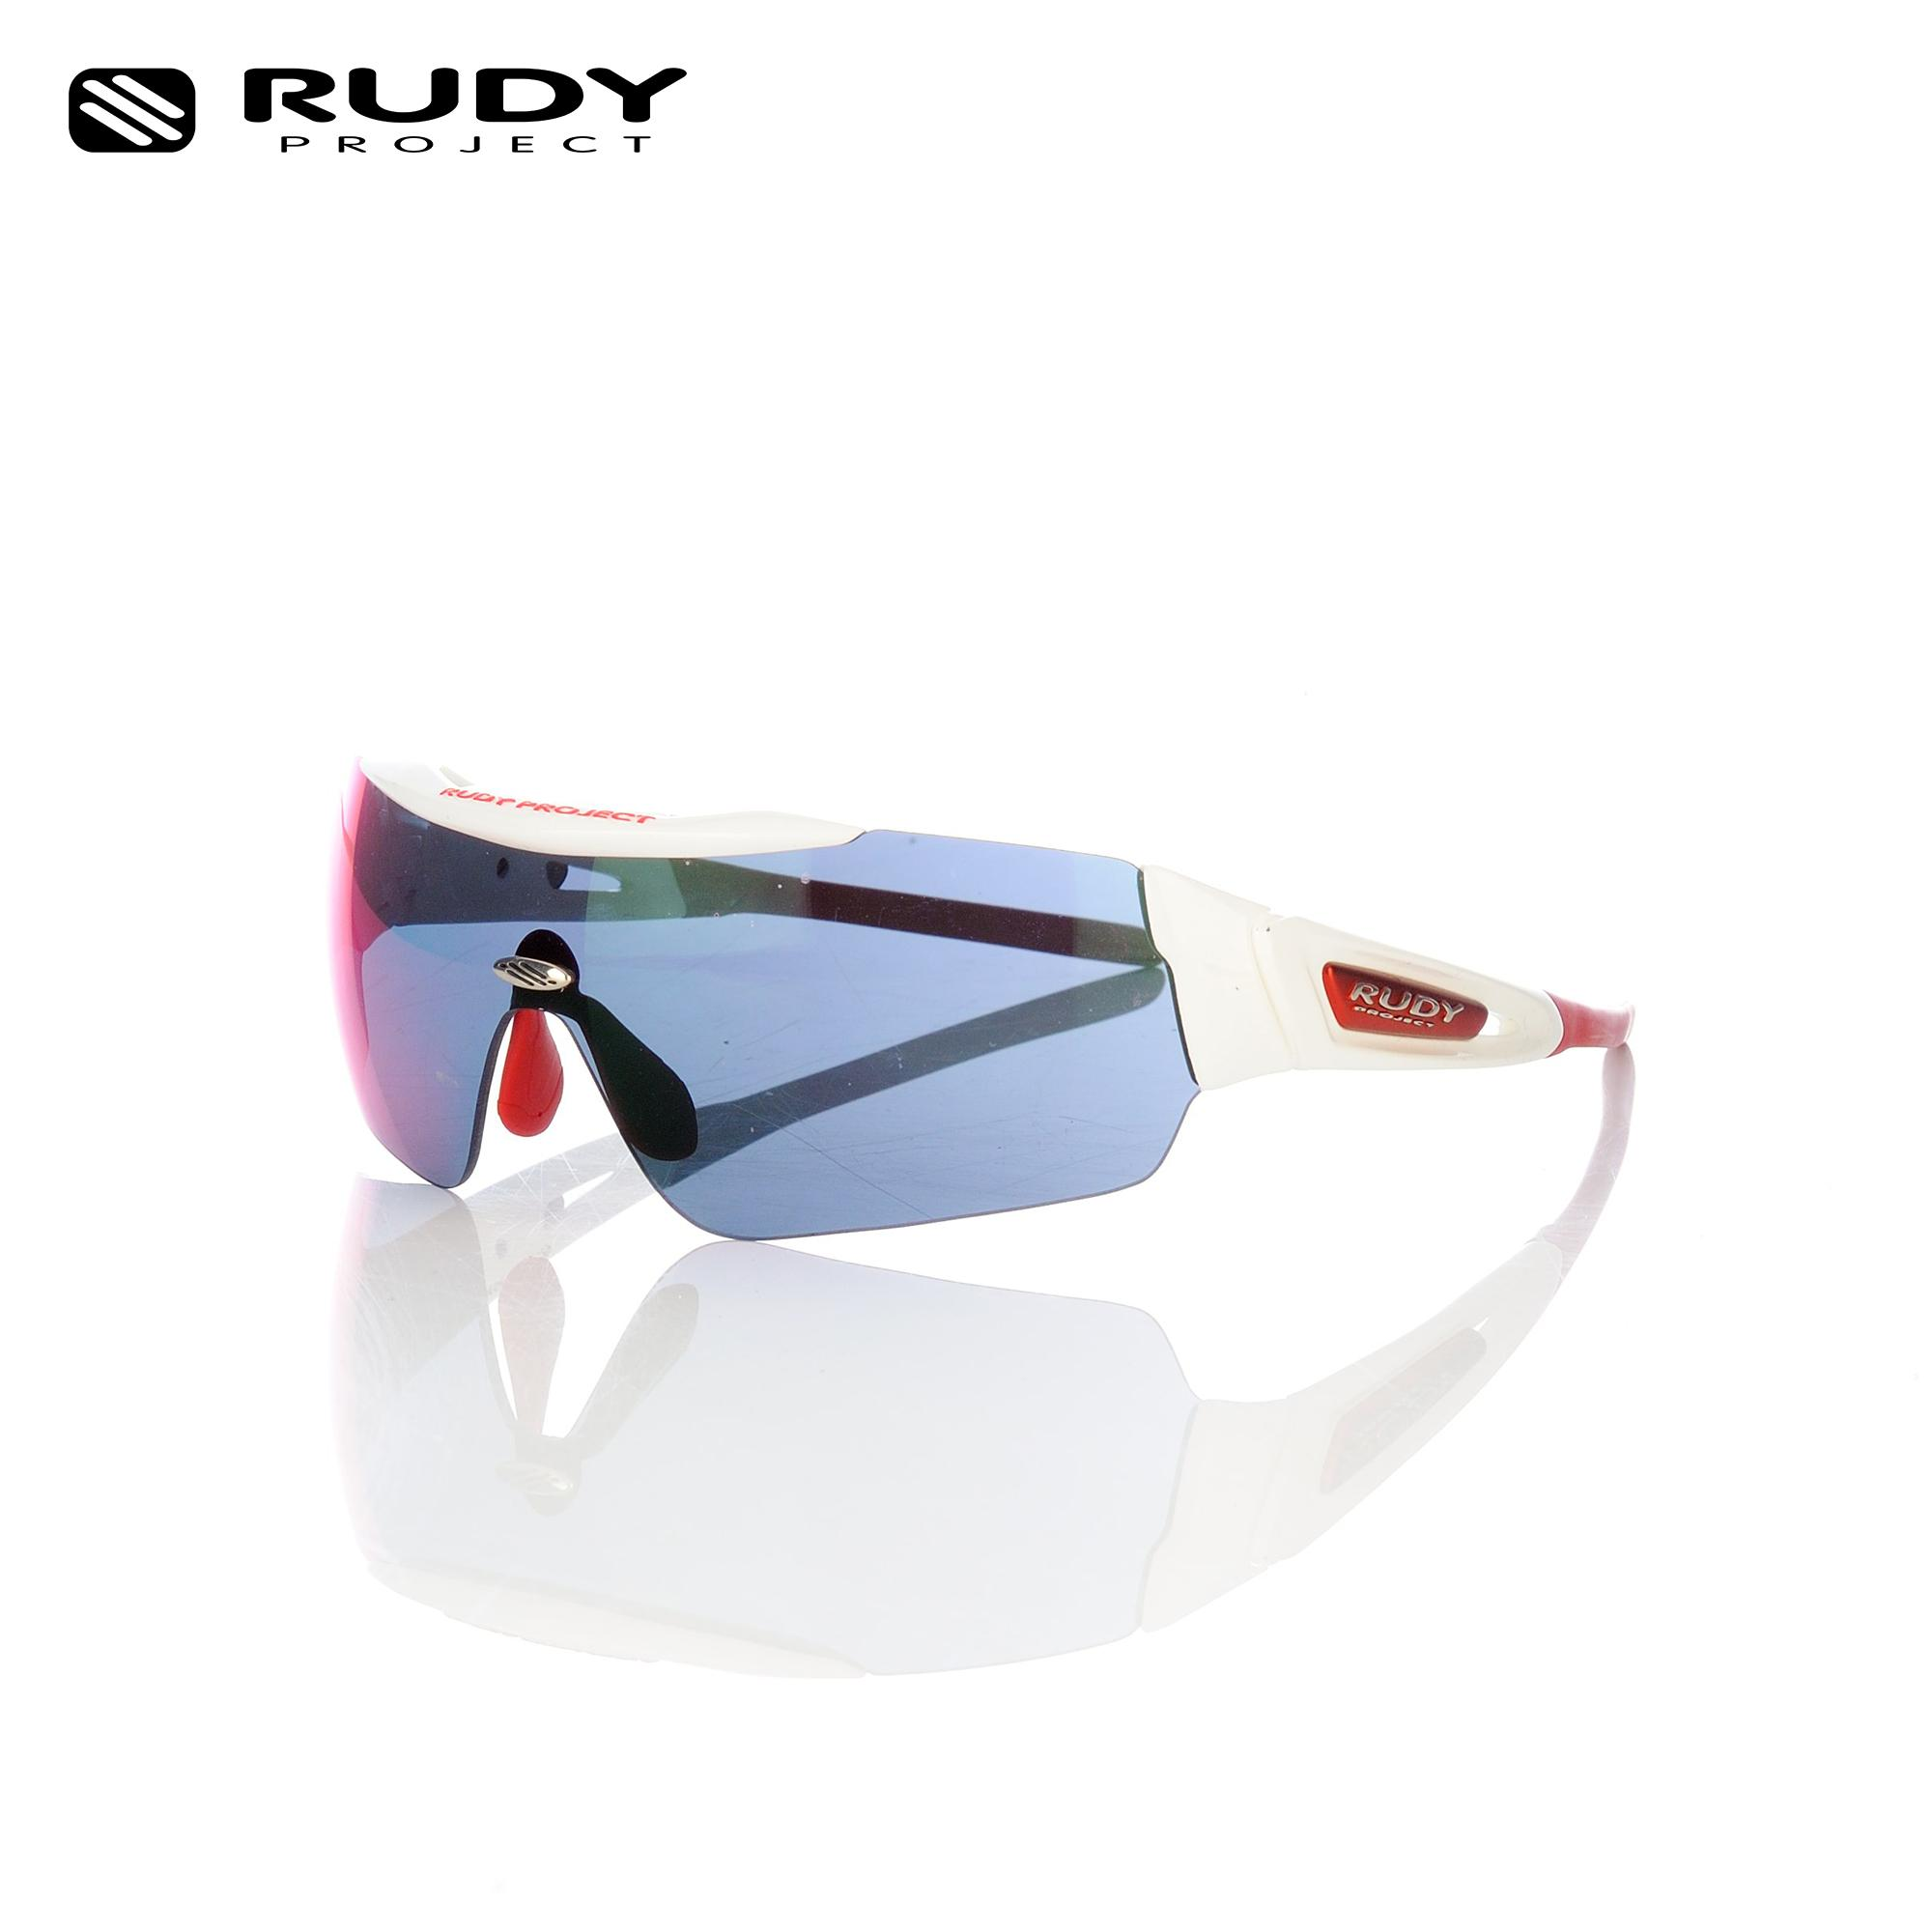 1e9dc759d9b74 Rudy Project Philippines  Rudy Project price list - Rudy Project ...